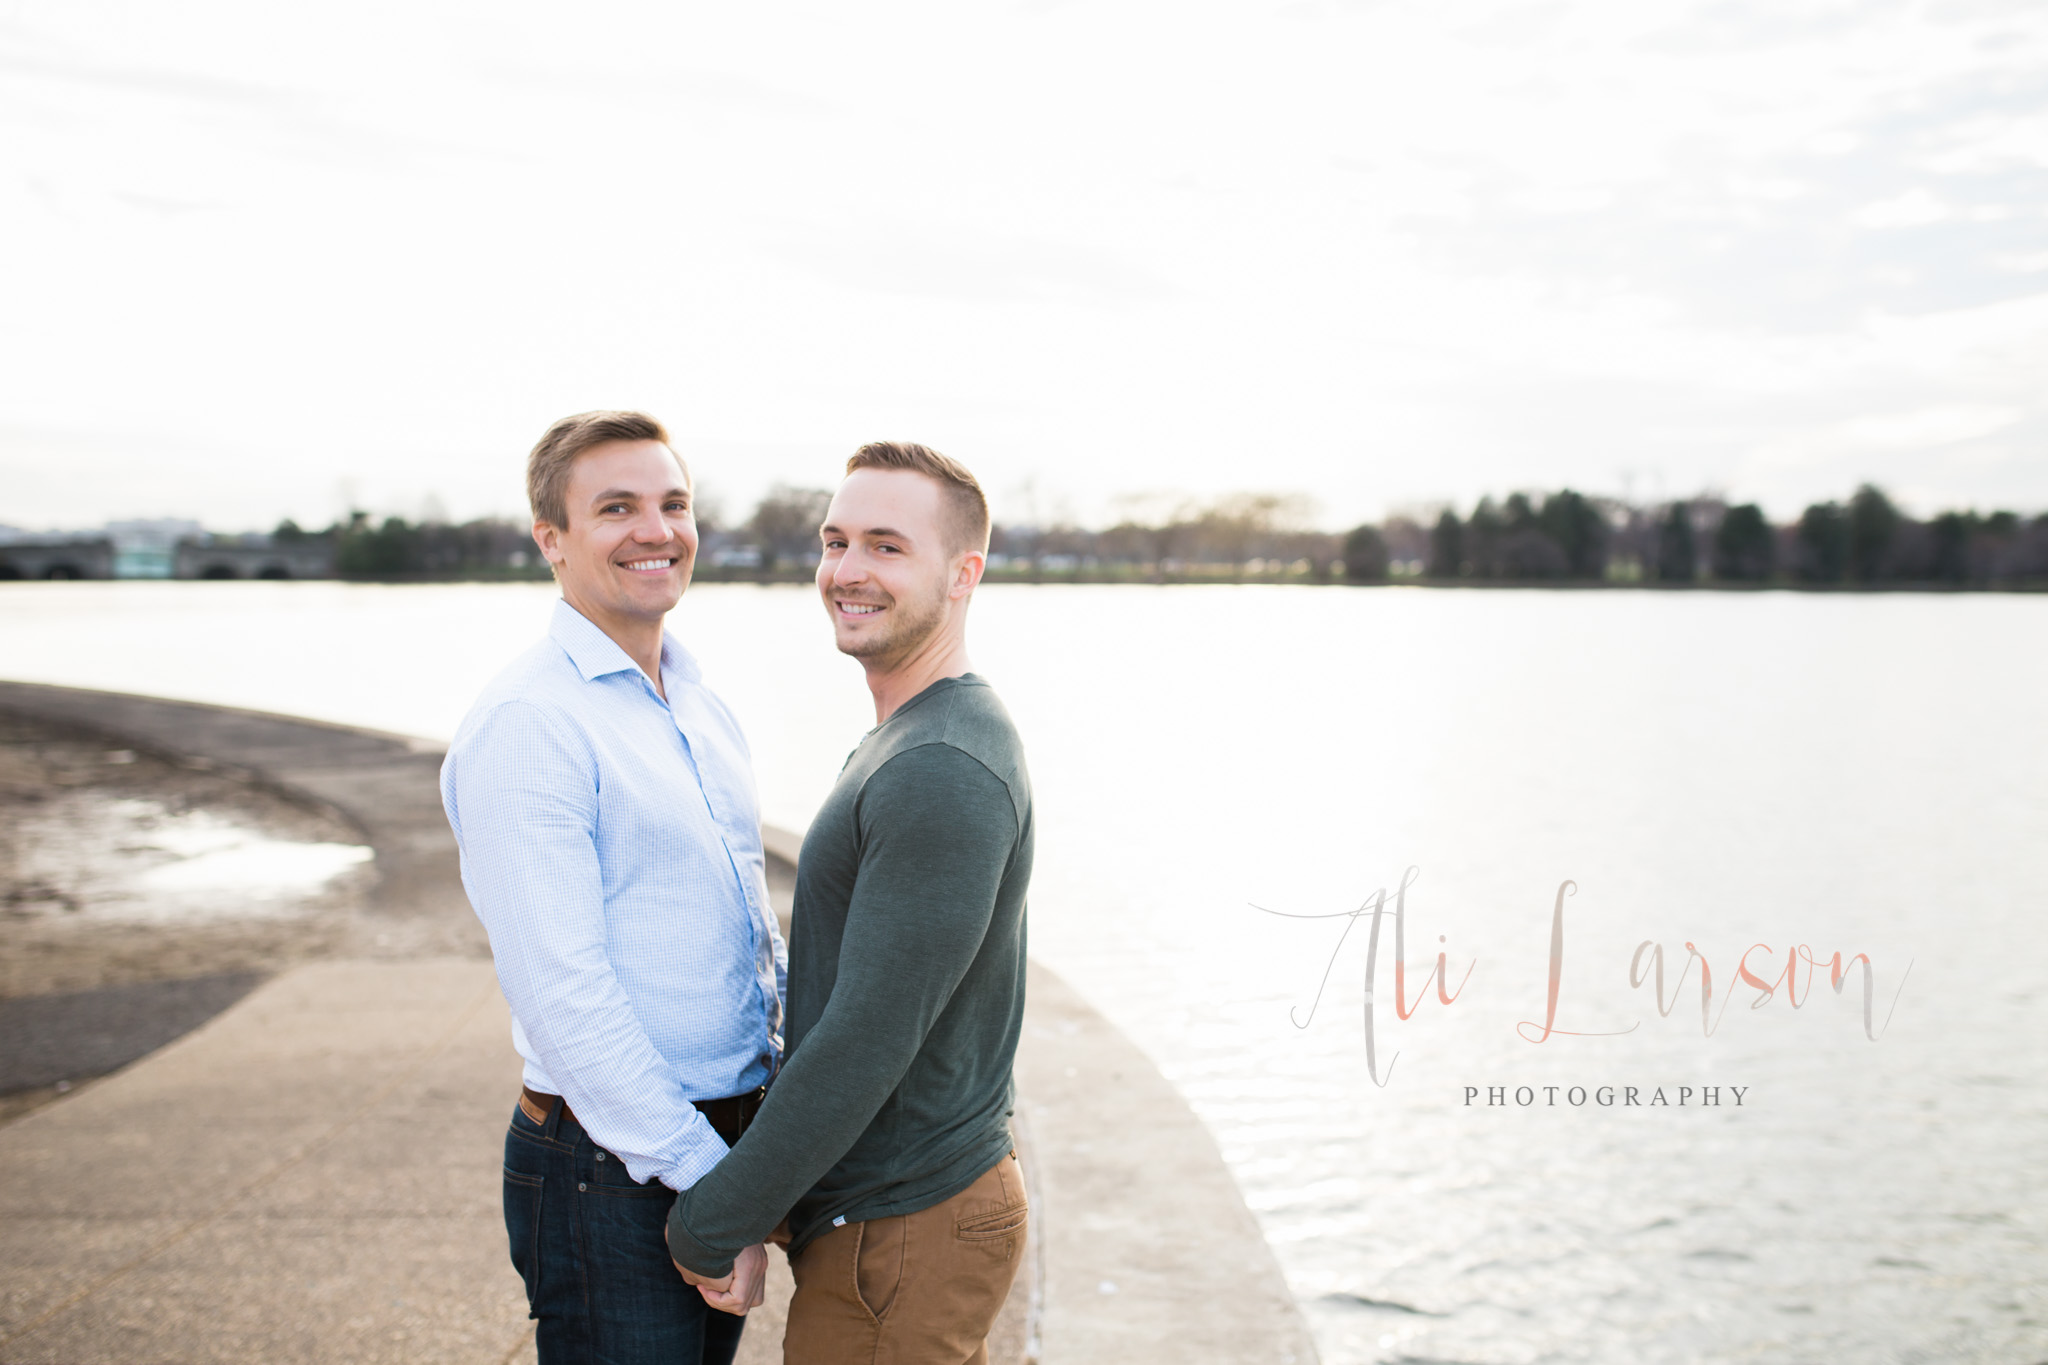 Bryan & Matt Engagement Pics 2016 for web-4